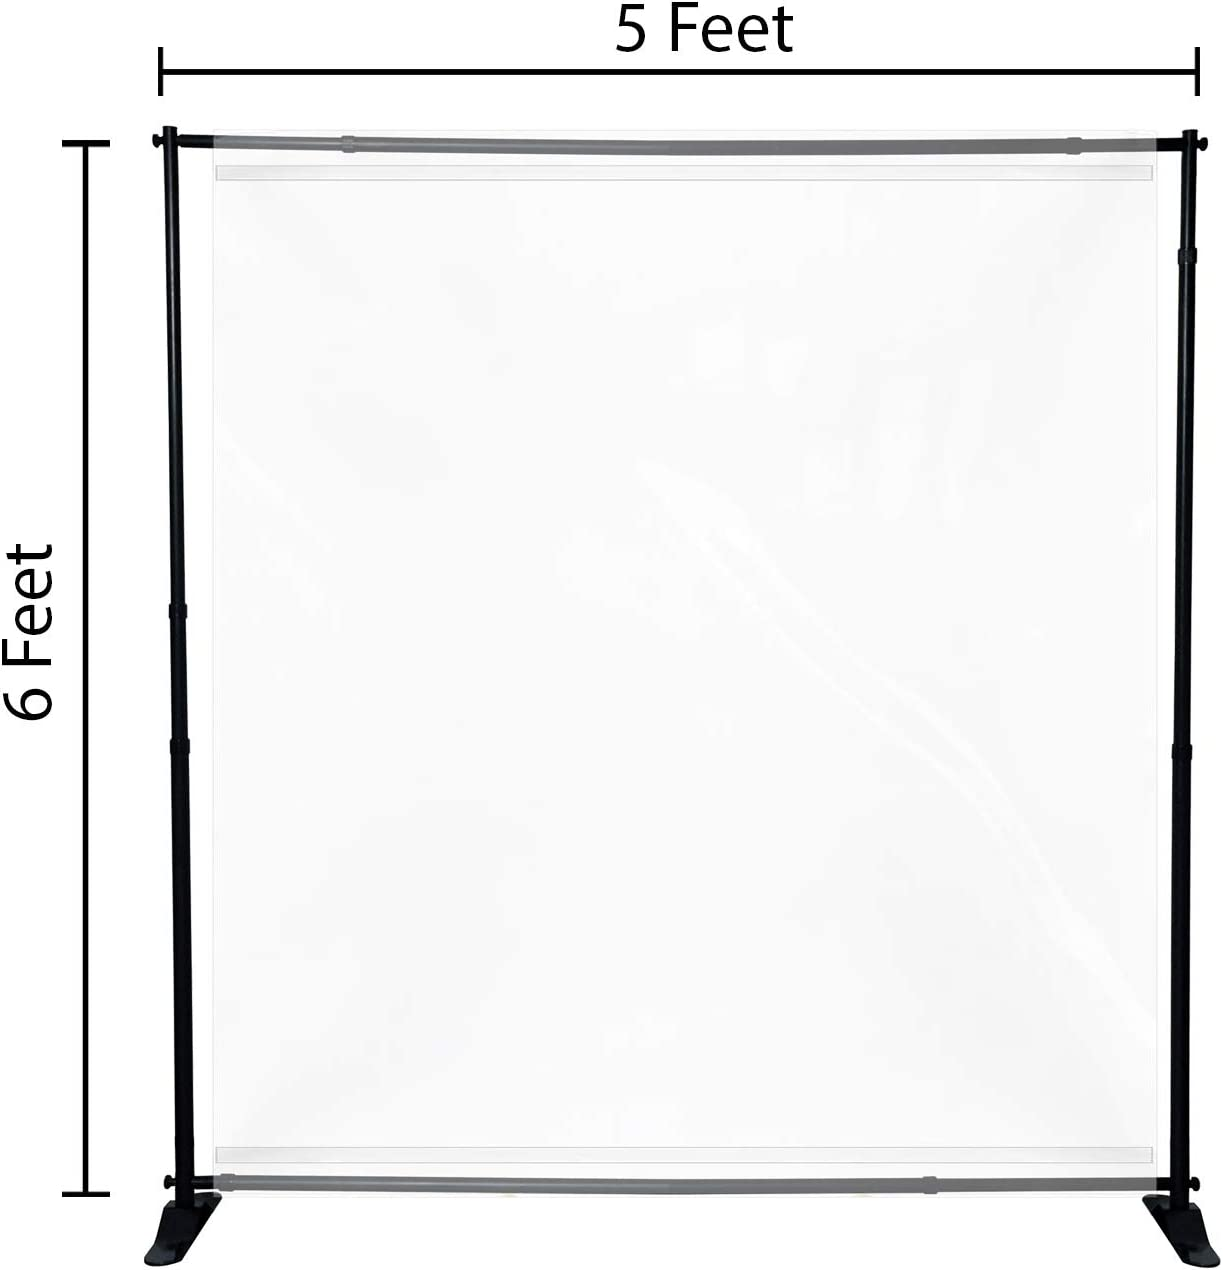 Floor Standing Sneeze Guard Free Standing Isolation Barrier Clear Film Protective Shield for Cafes Receptionist Retail Stores Cashier